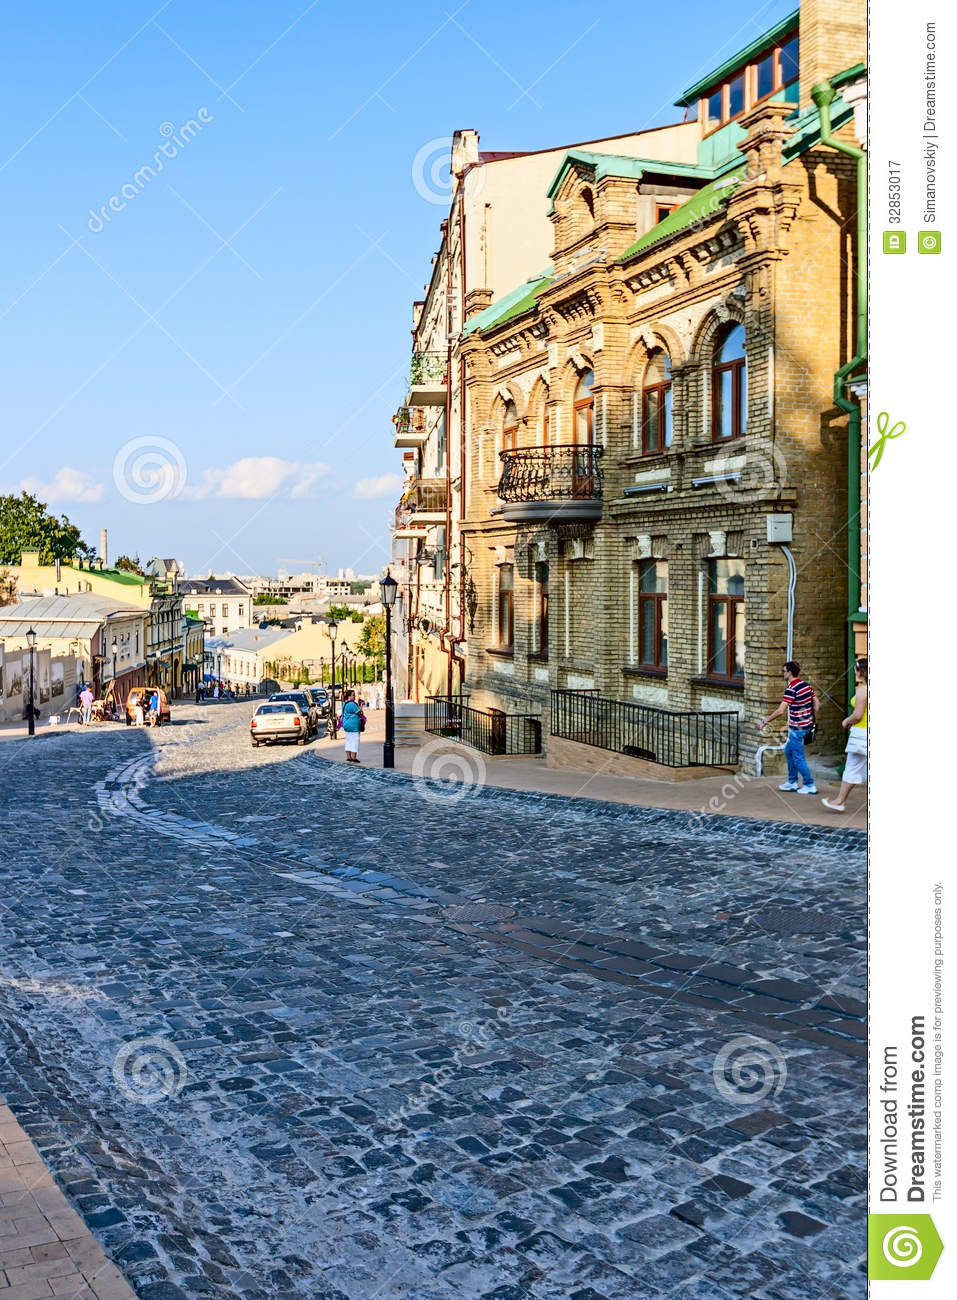 a description of kiev as one of the oldest cities in ukraine Tips about kiev, ukraine with about 2,8 million of inhabitants, kiev (kyiv) is the biggest city in ukraine (a post i wrote about an overview of the country), in addition to be the capital.